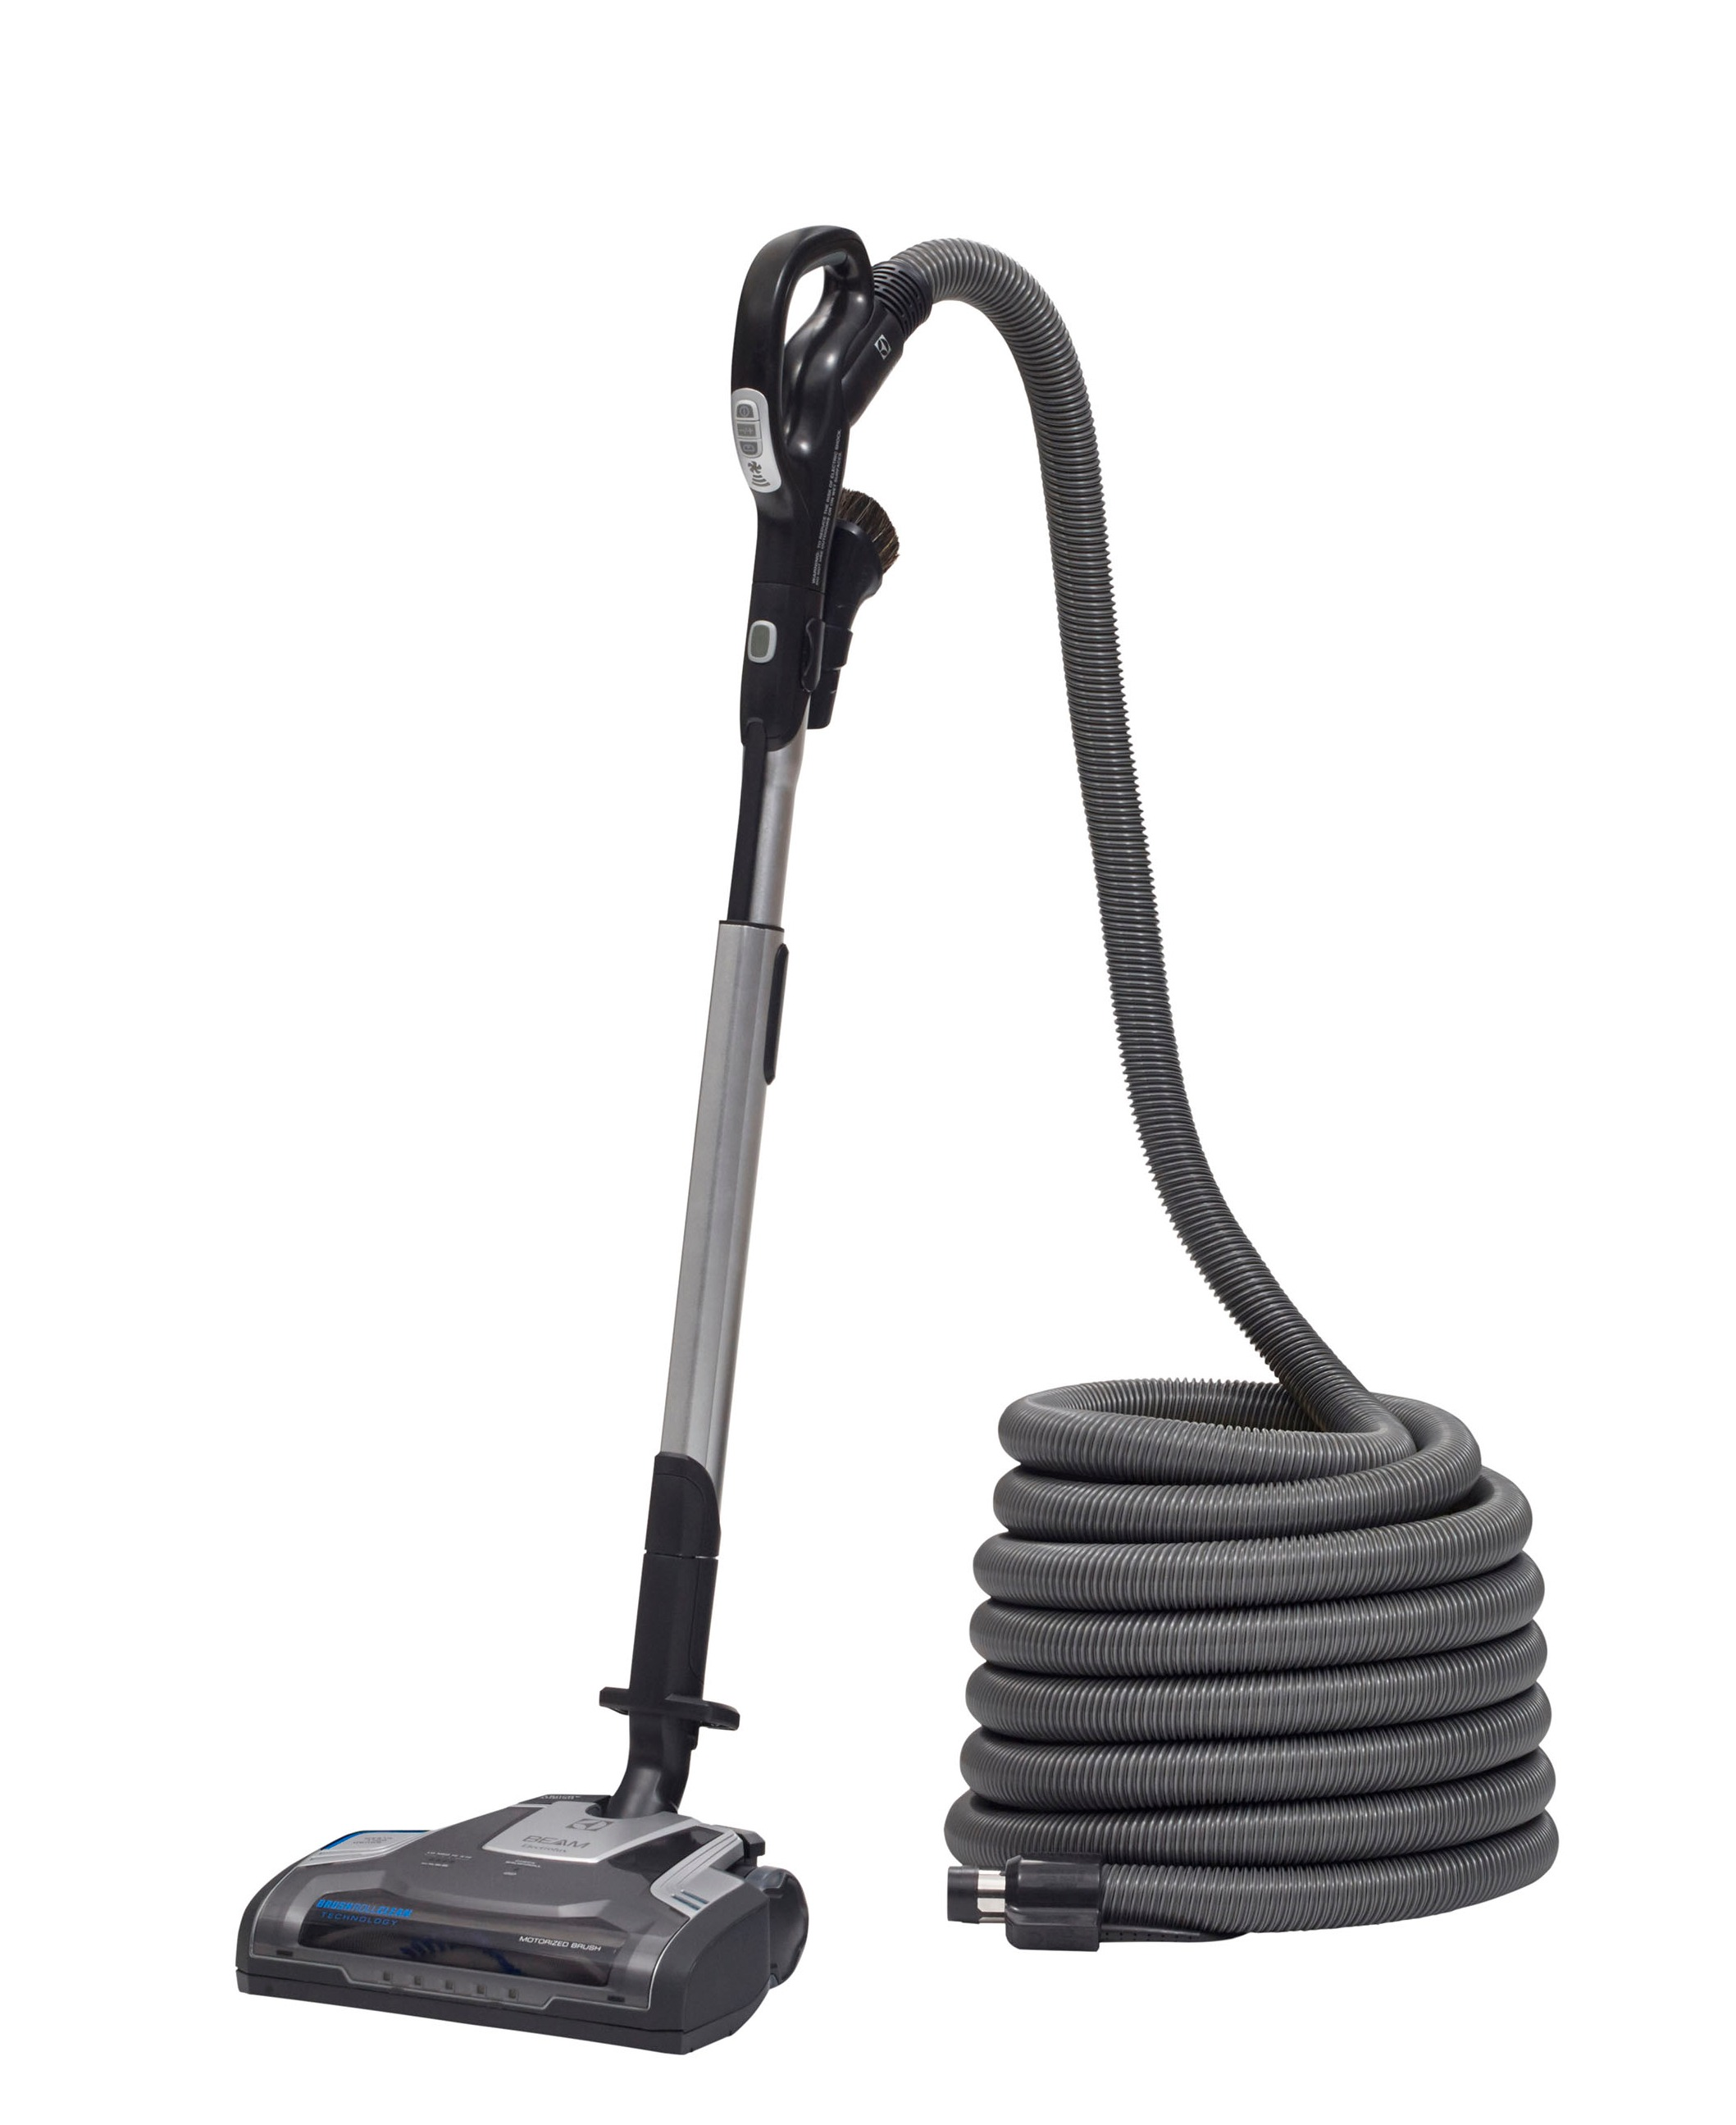 https://www.speedyvacuum.ca/public/uploads/products_photo/5819fa21dff86.jpg